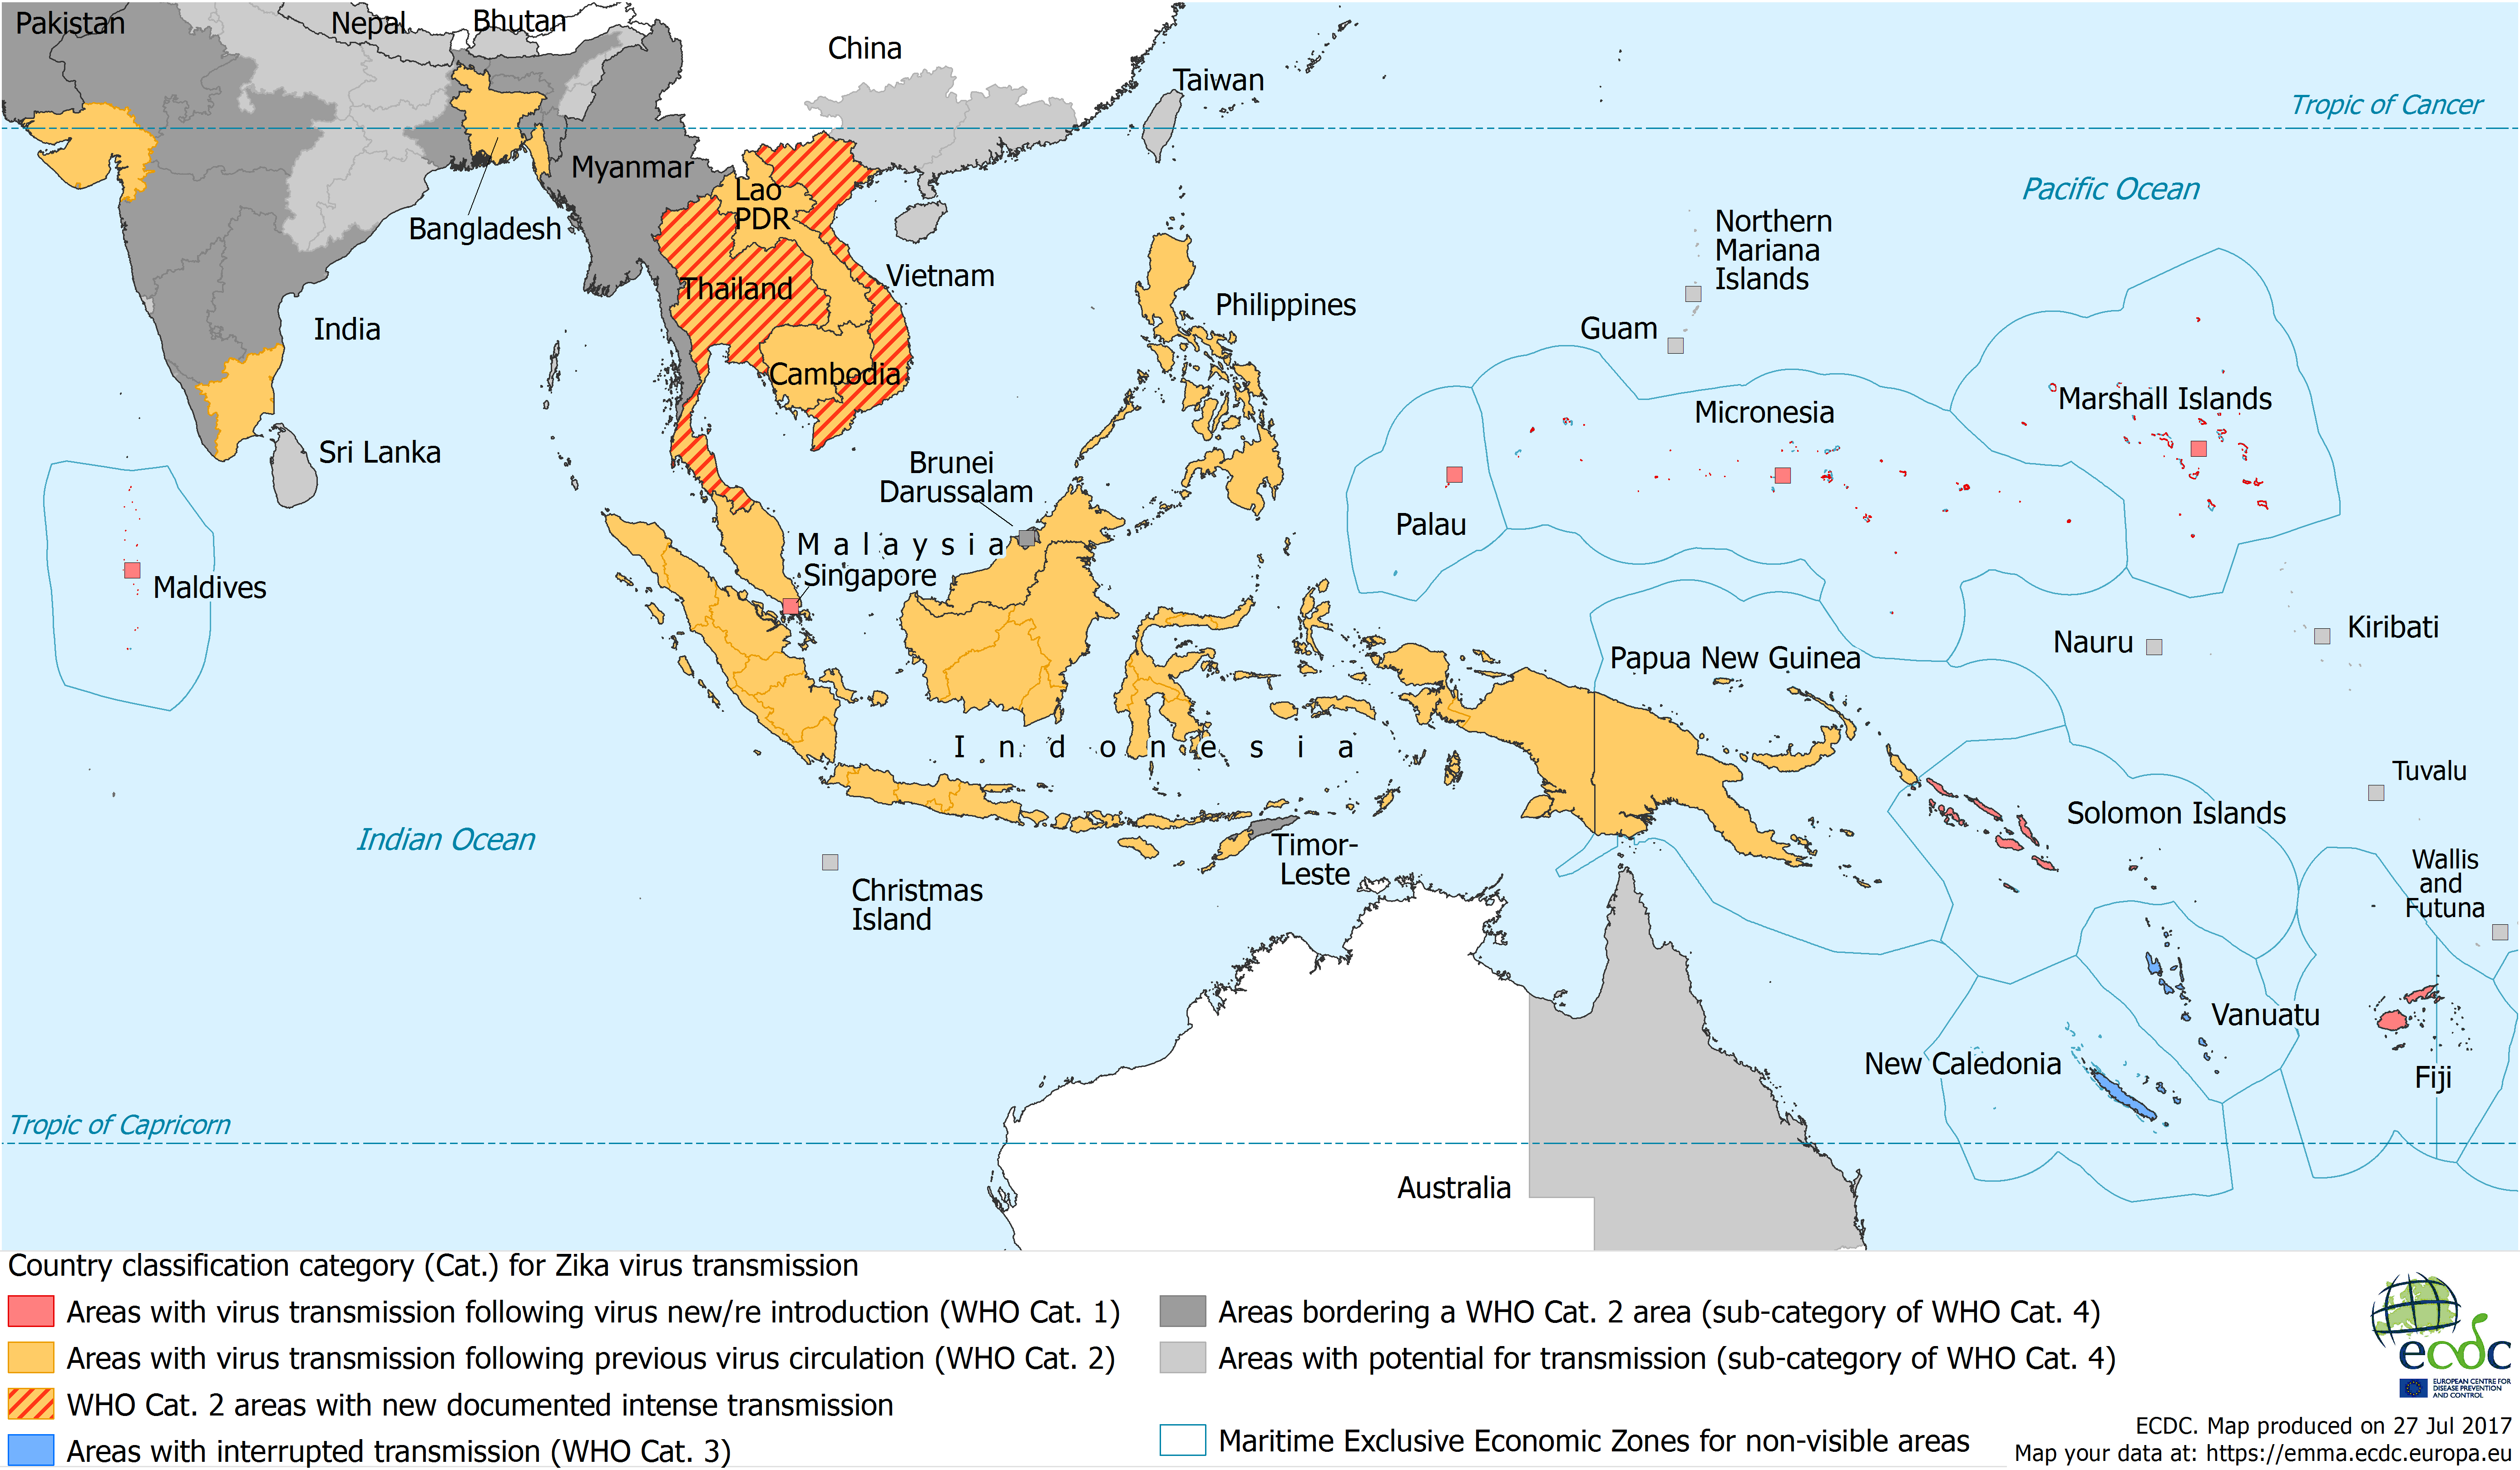 Zika transmission in South East Asia